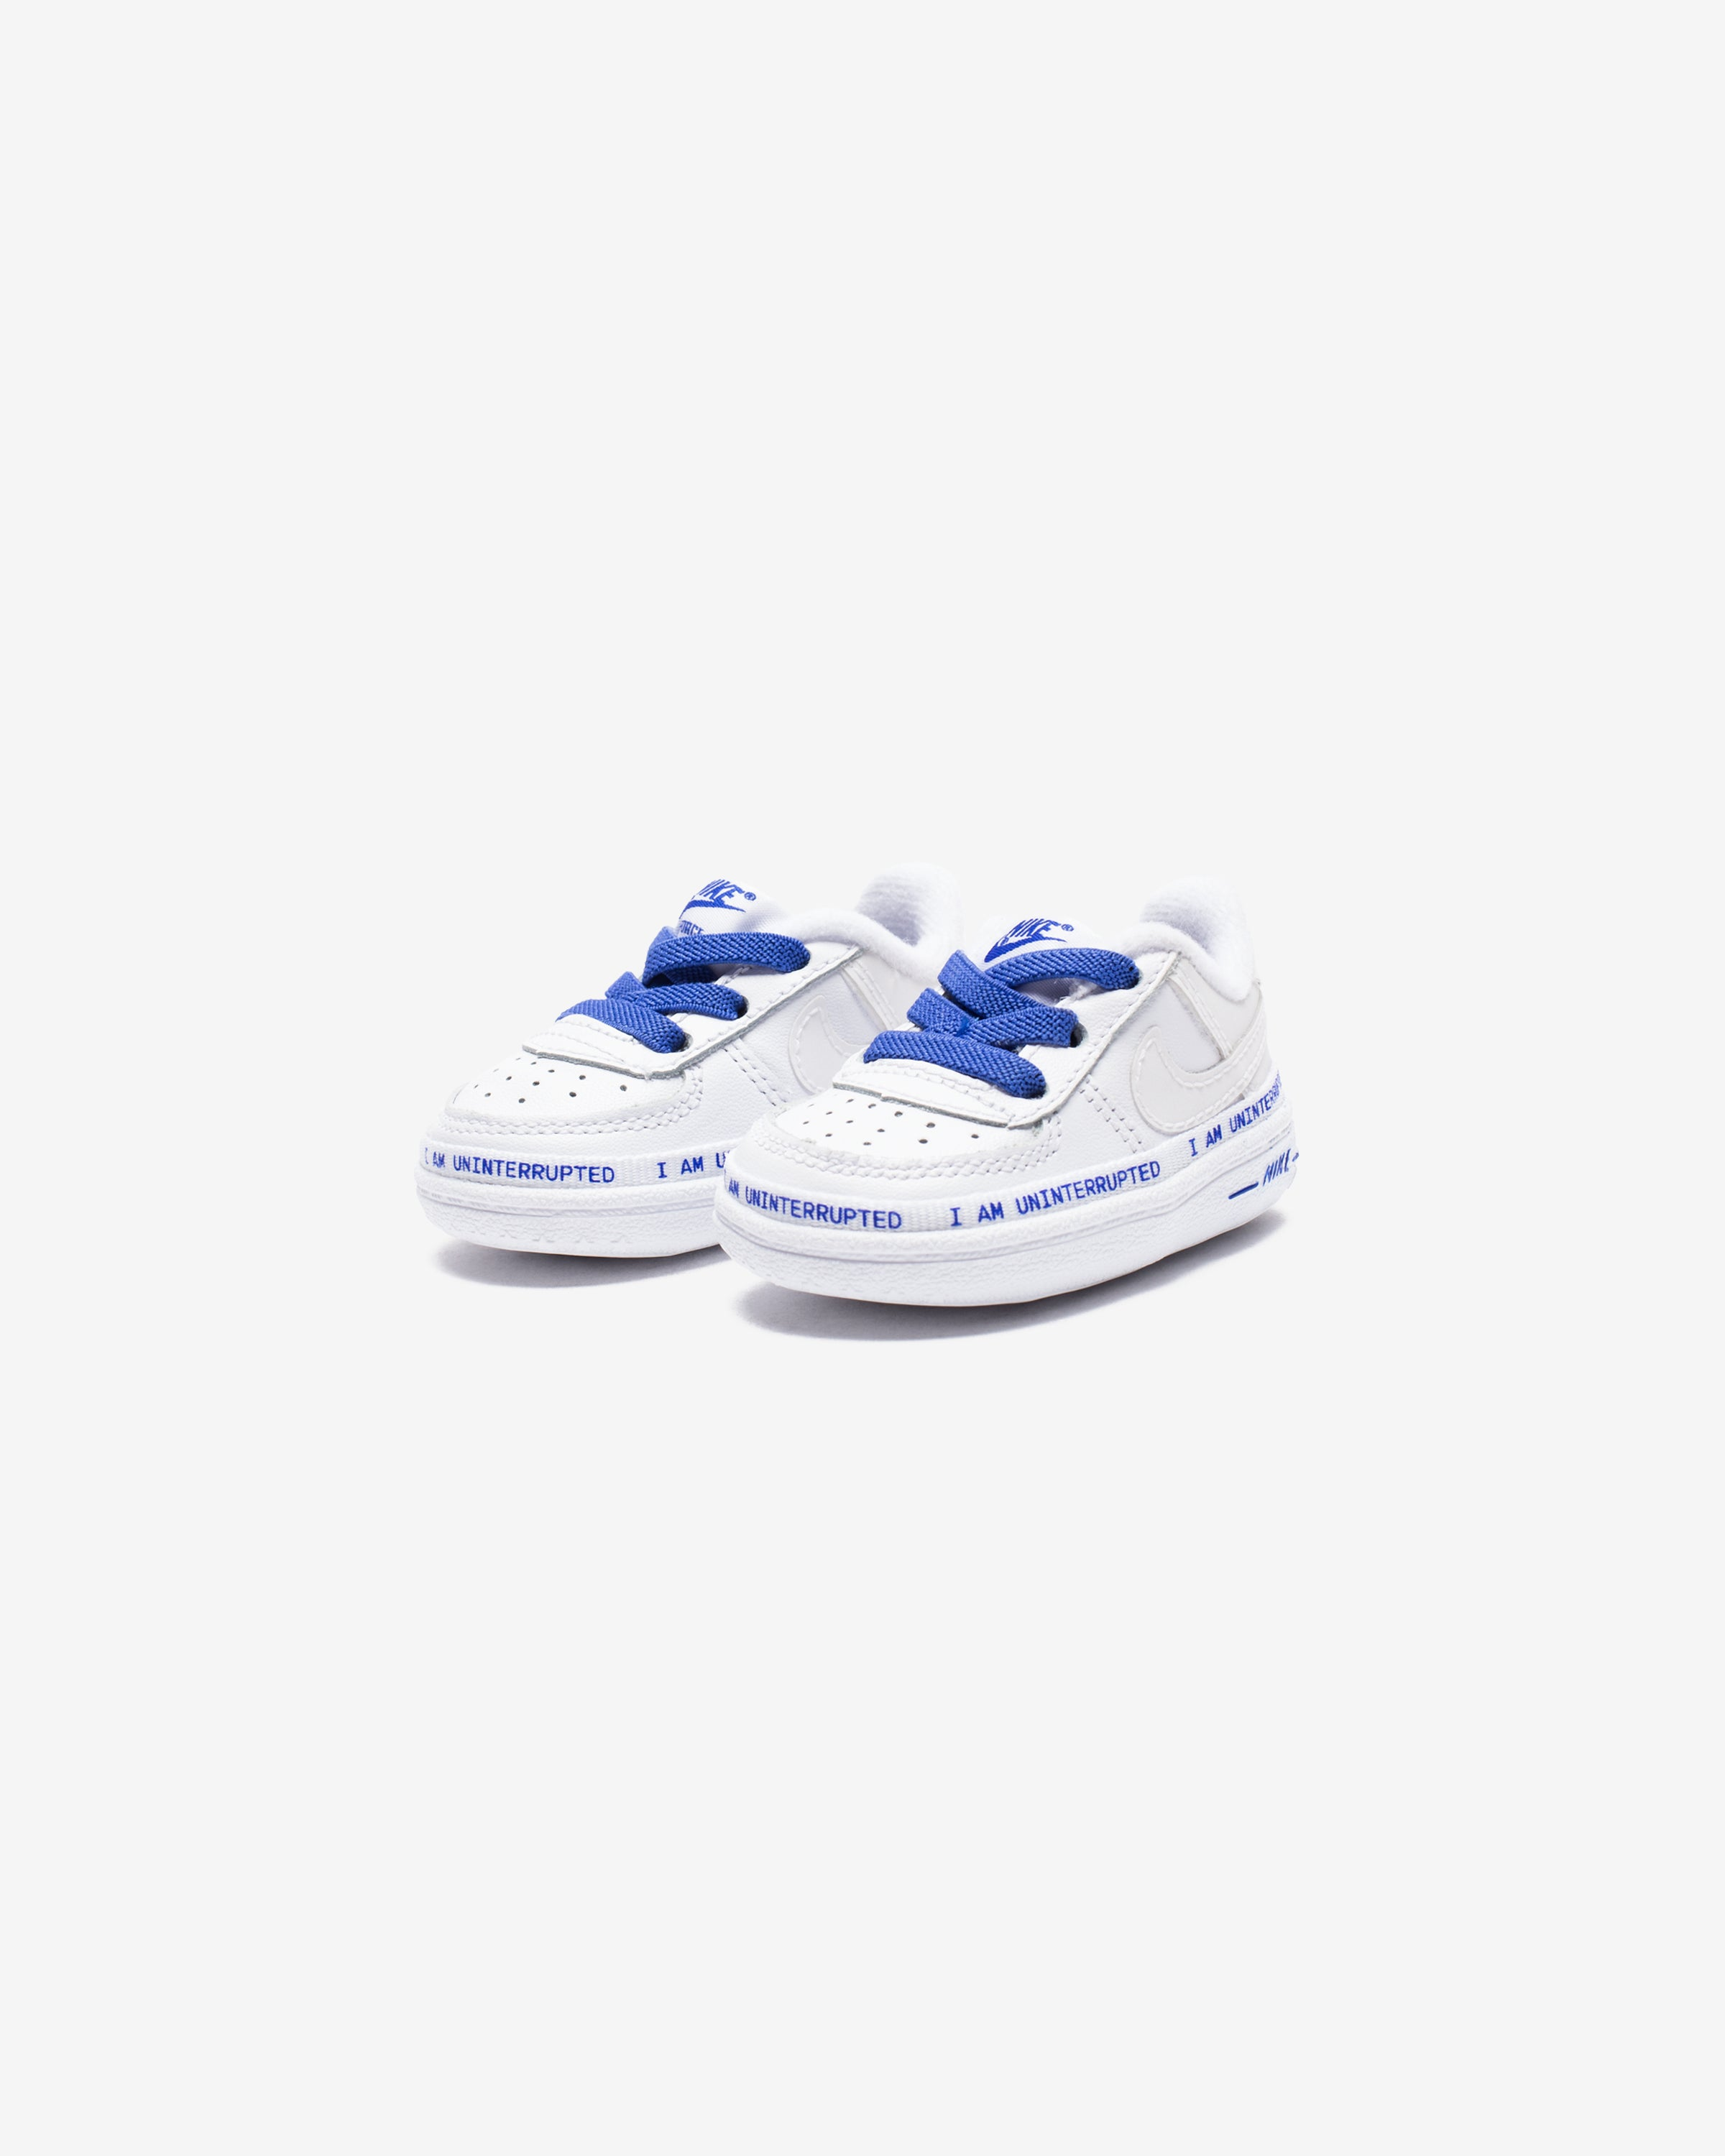 NIKE X UNINTERRUPTED CRIB AIR FORCE 1 '07 QS - WHITE/RACERBLUE